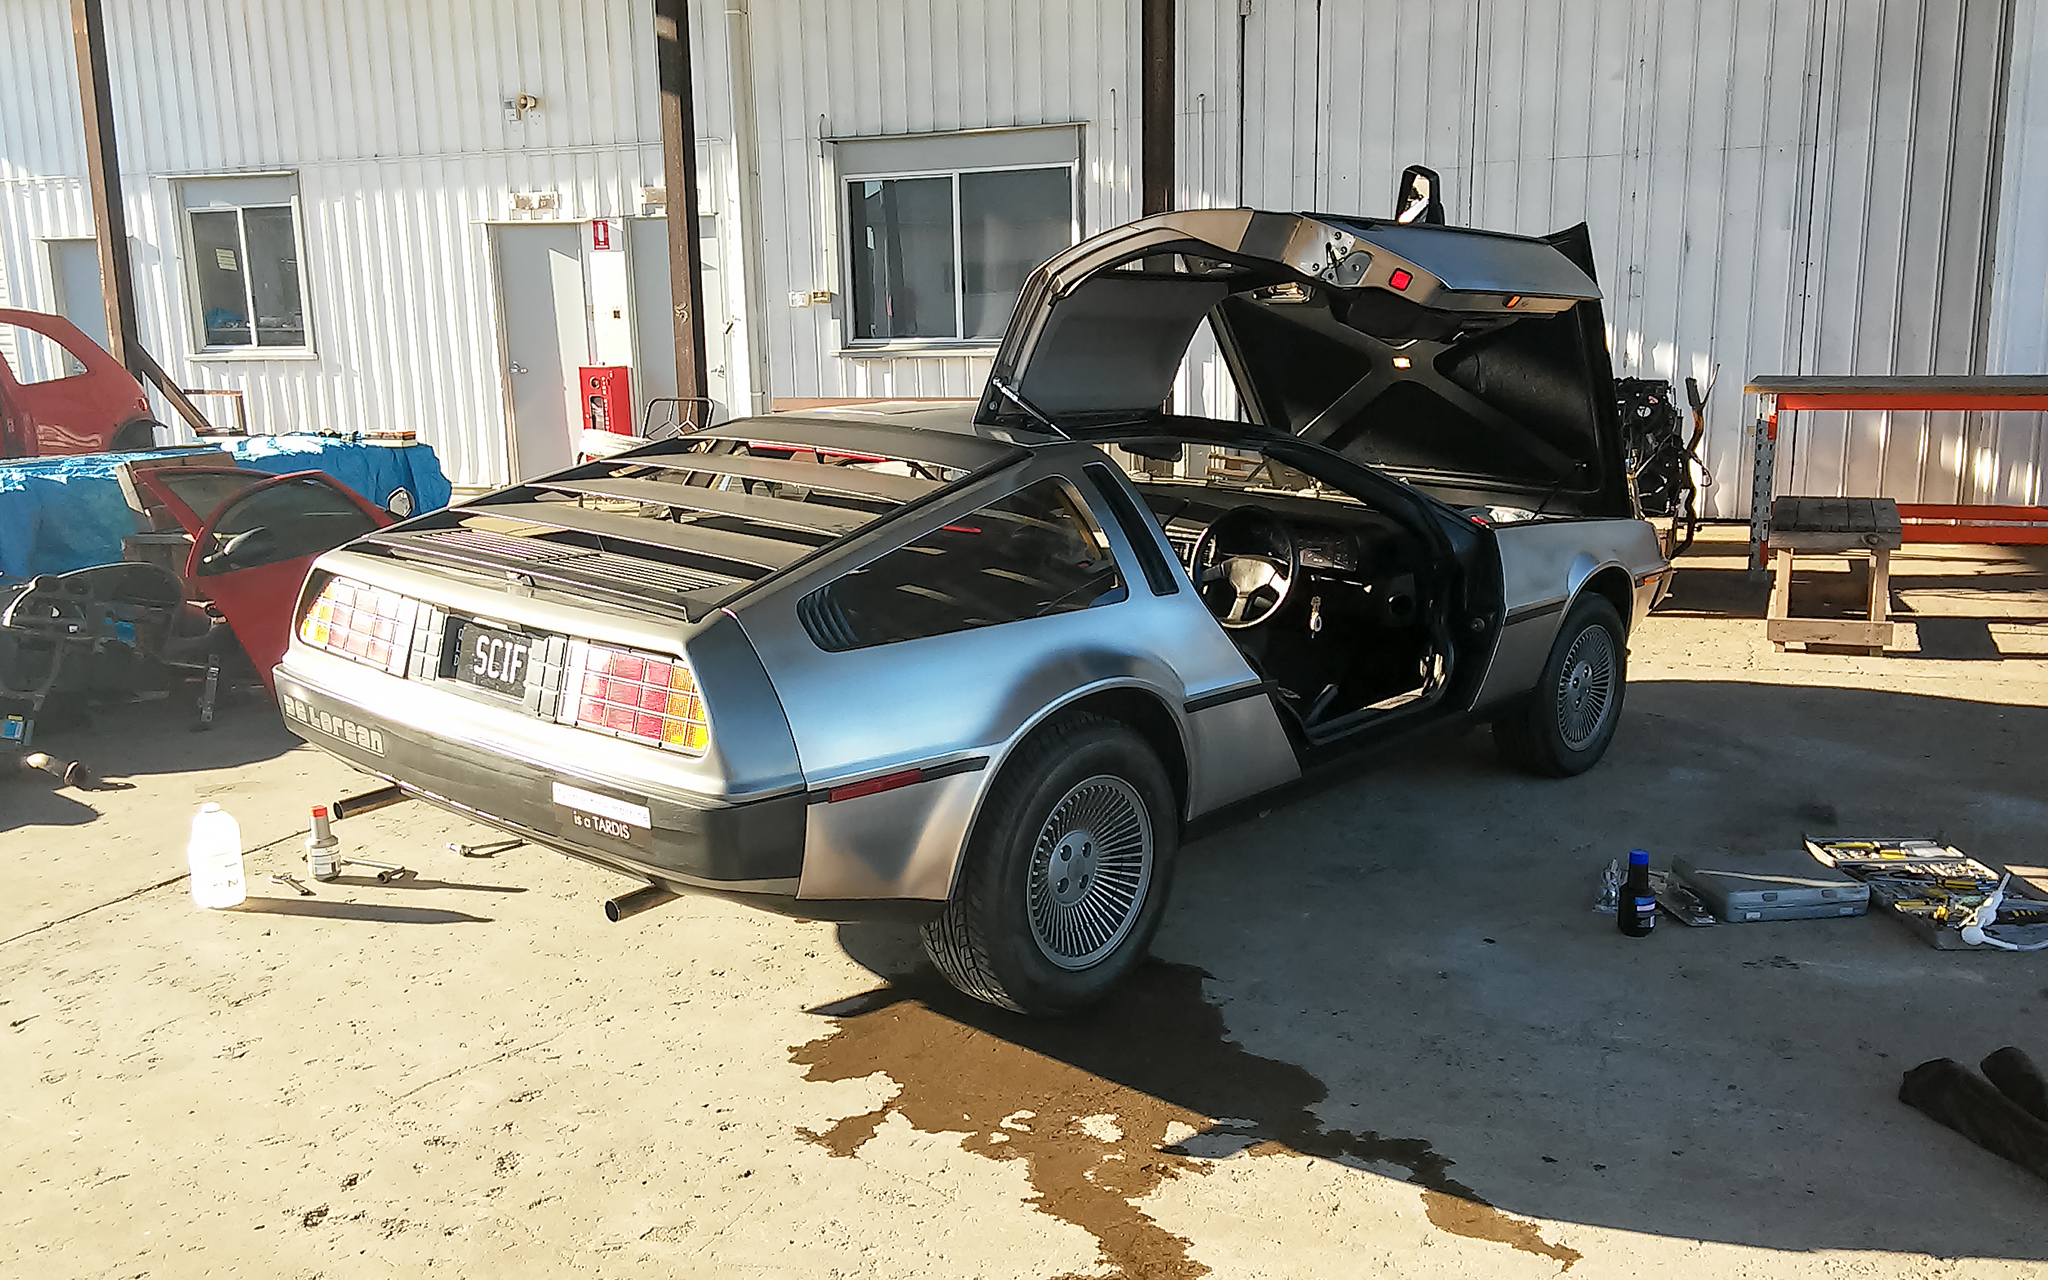 DeLorean Brake Bleeding Finished